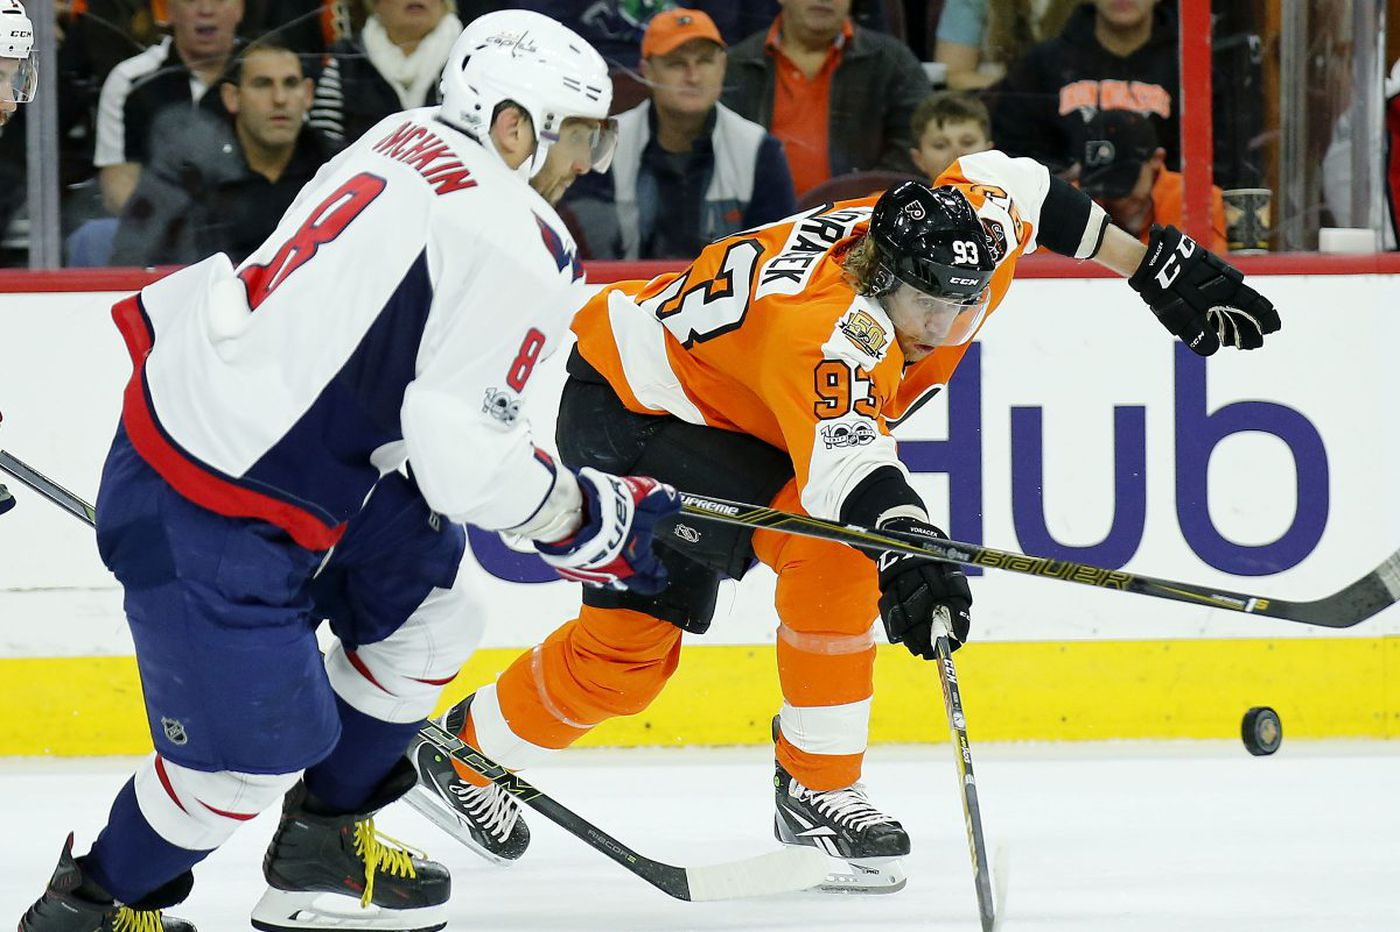 Flyers-Capitals set for 4 p.m. Thursday in Toronto